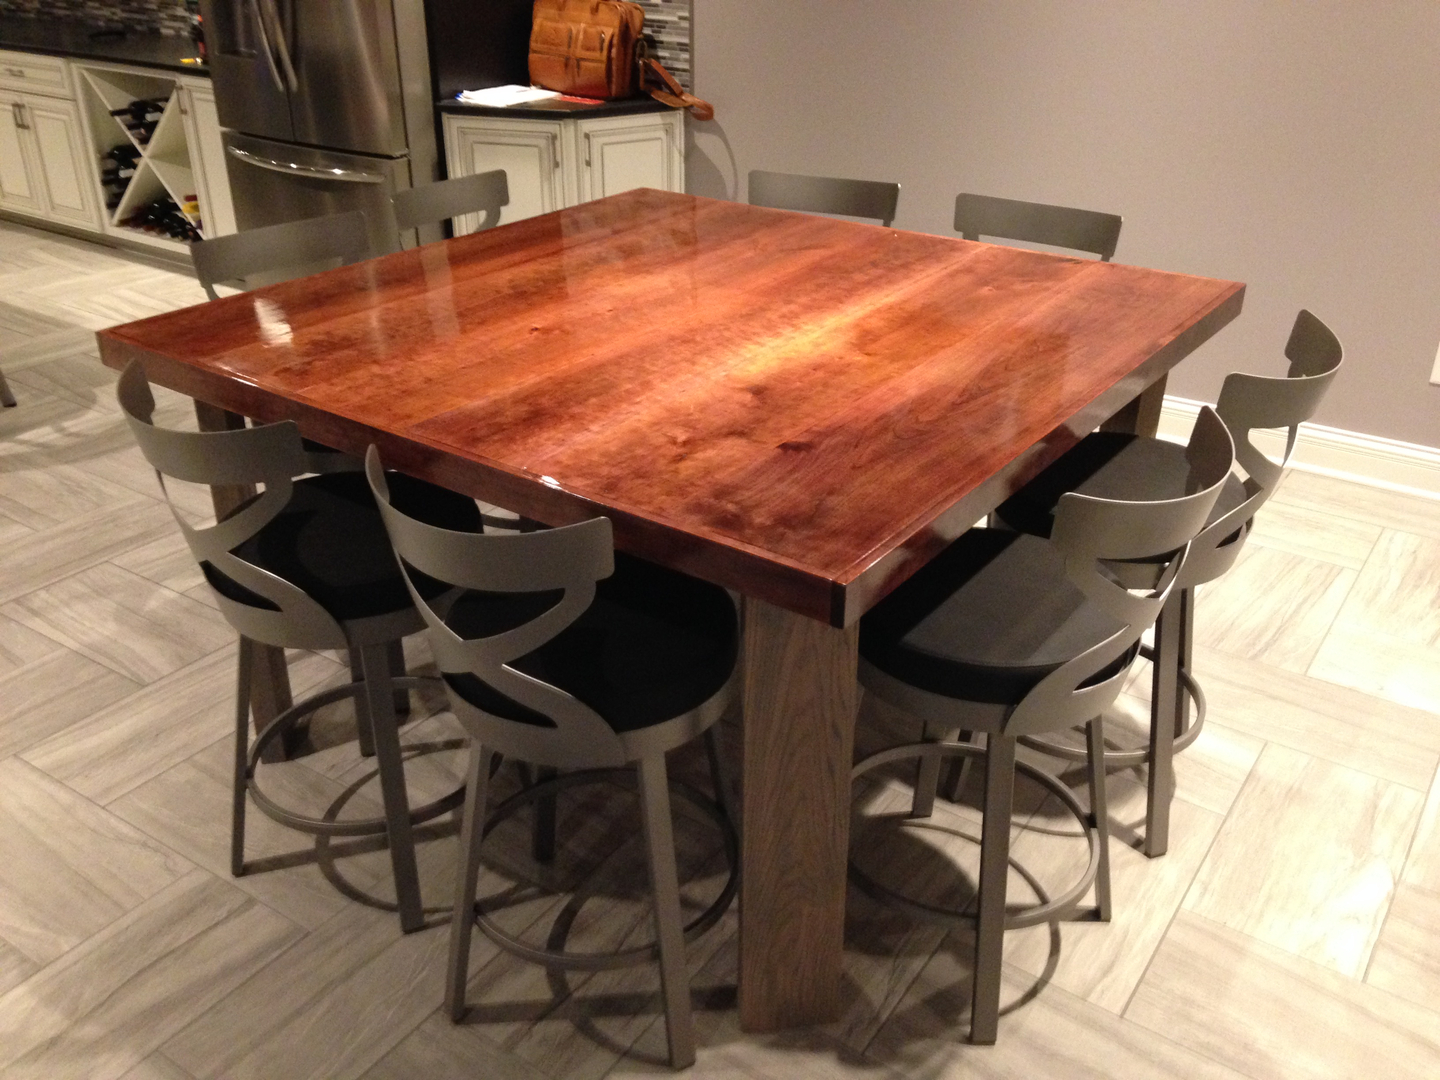 Welcome to red barn home furnishings where we pride ourselves on custom one of a kind handmade furniture all of our lumber is hand selected by our lead